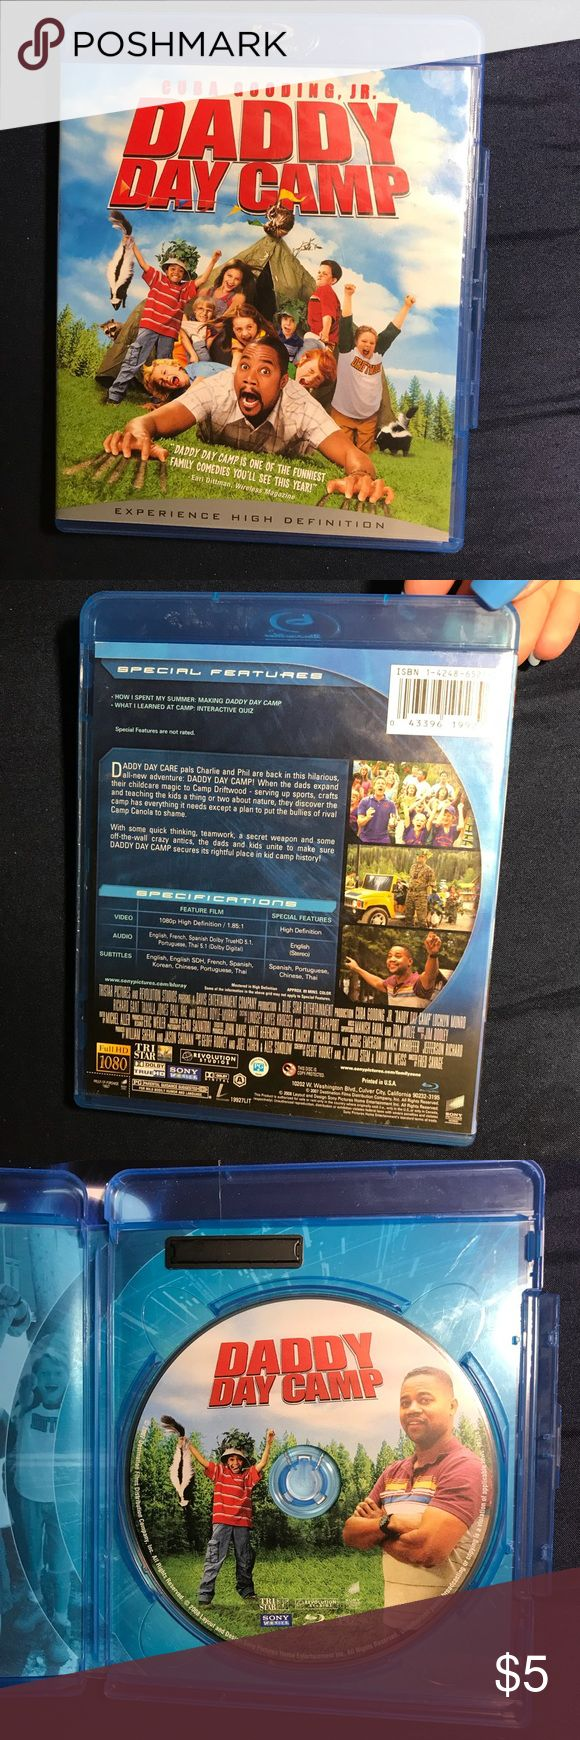 Daddy Day Camp Blu-Ray Disc A Cuba Gooding Jr funniest comedy blu-ray DVD movie. No scratches. Blu-Ray Disc Other